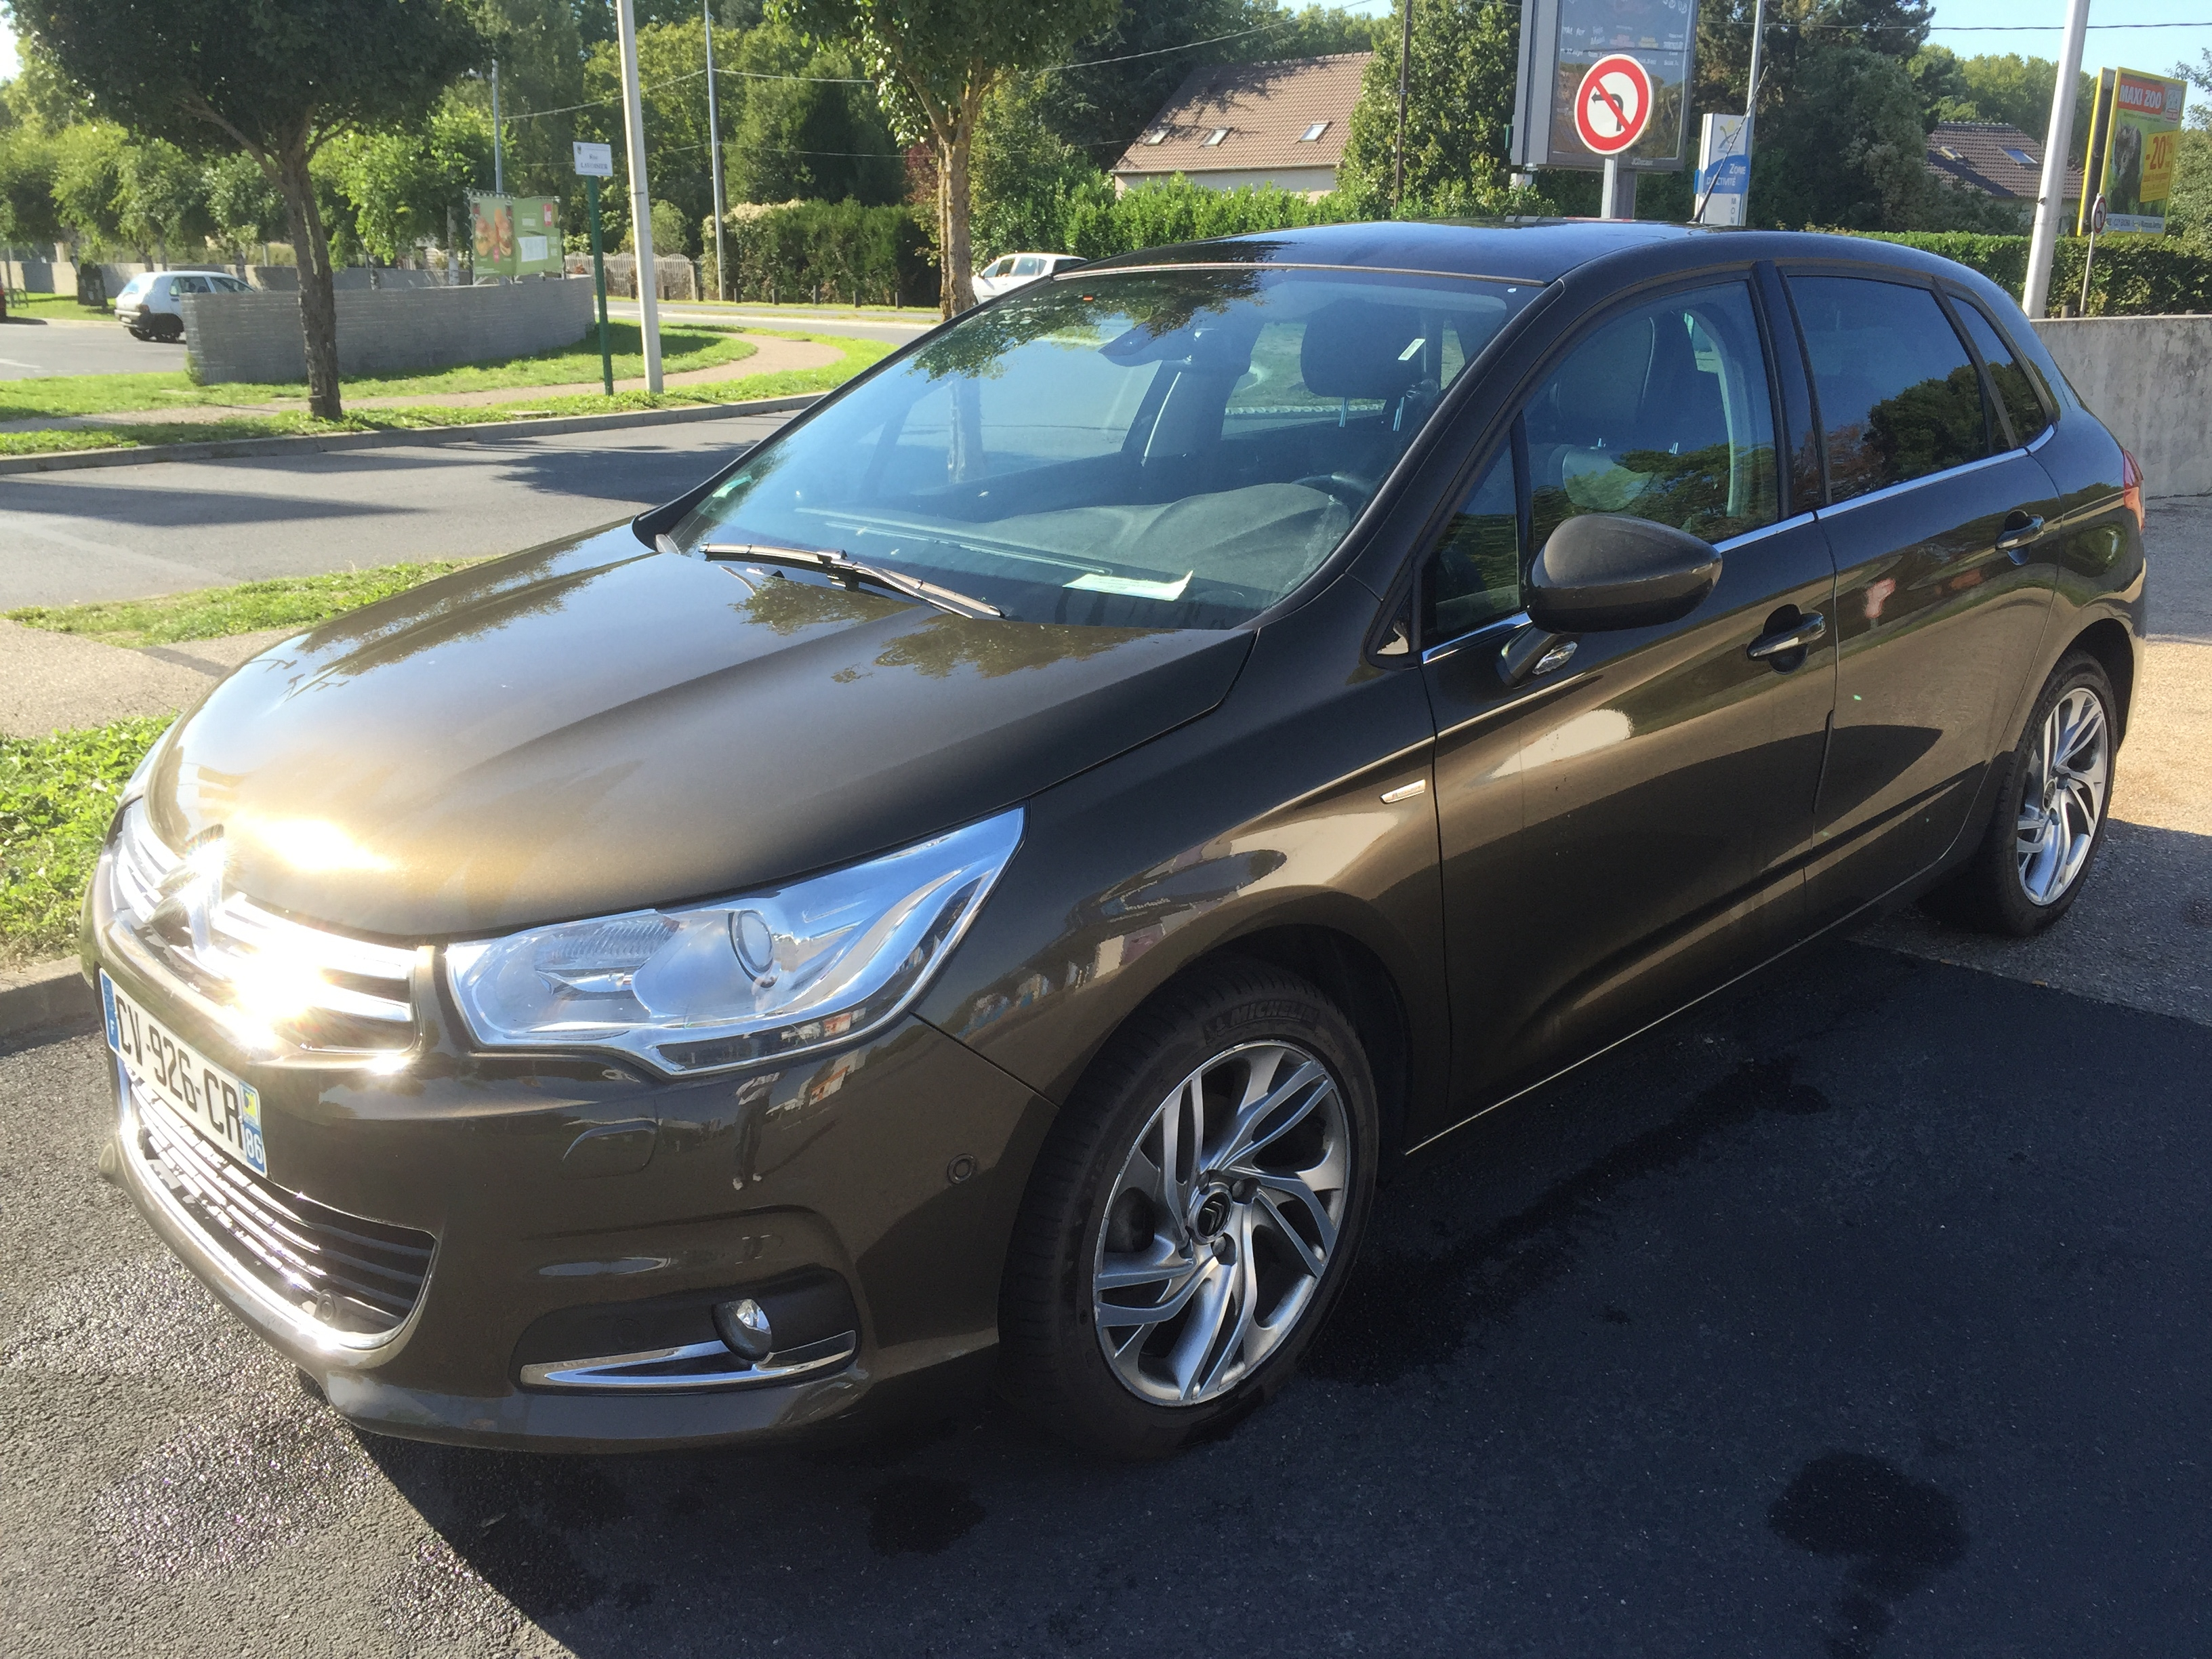 CITROEN C4 E-HDI 115 AIRDREAM EXCLUSIVE FRENCH